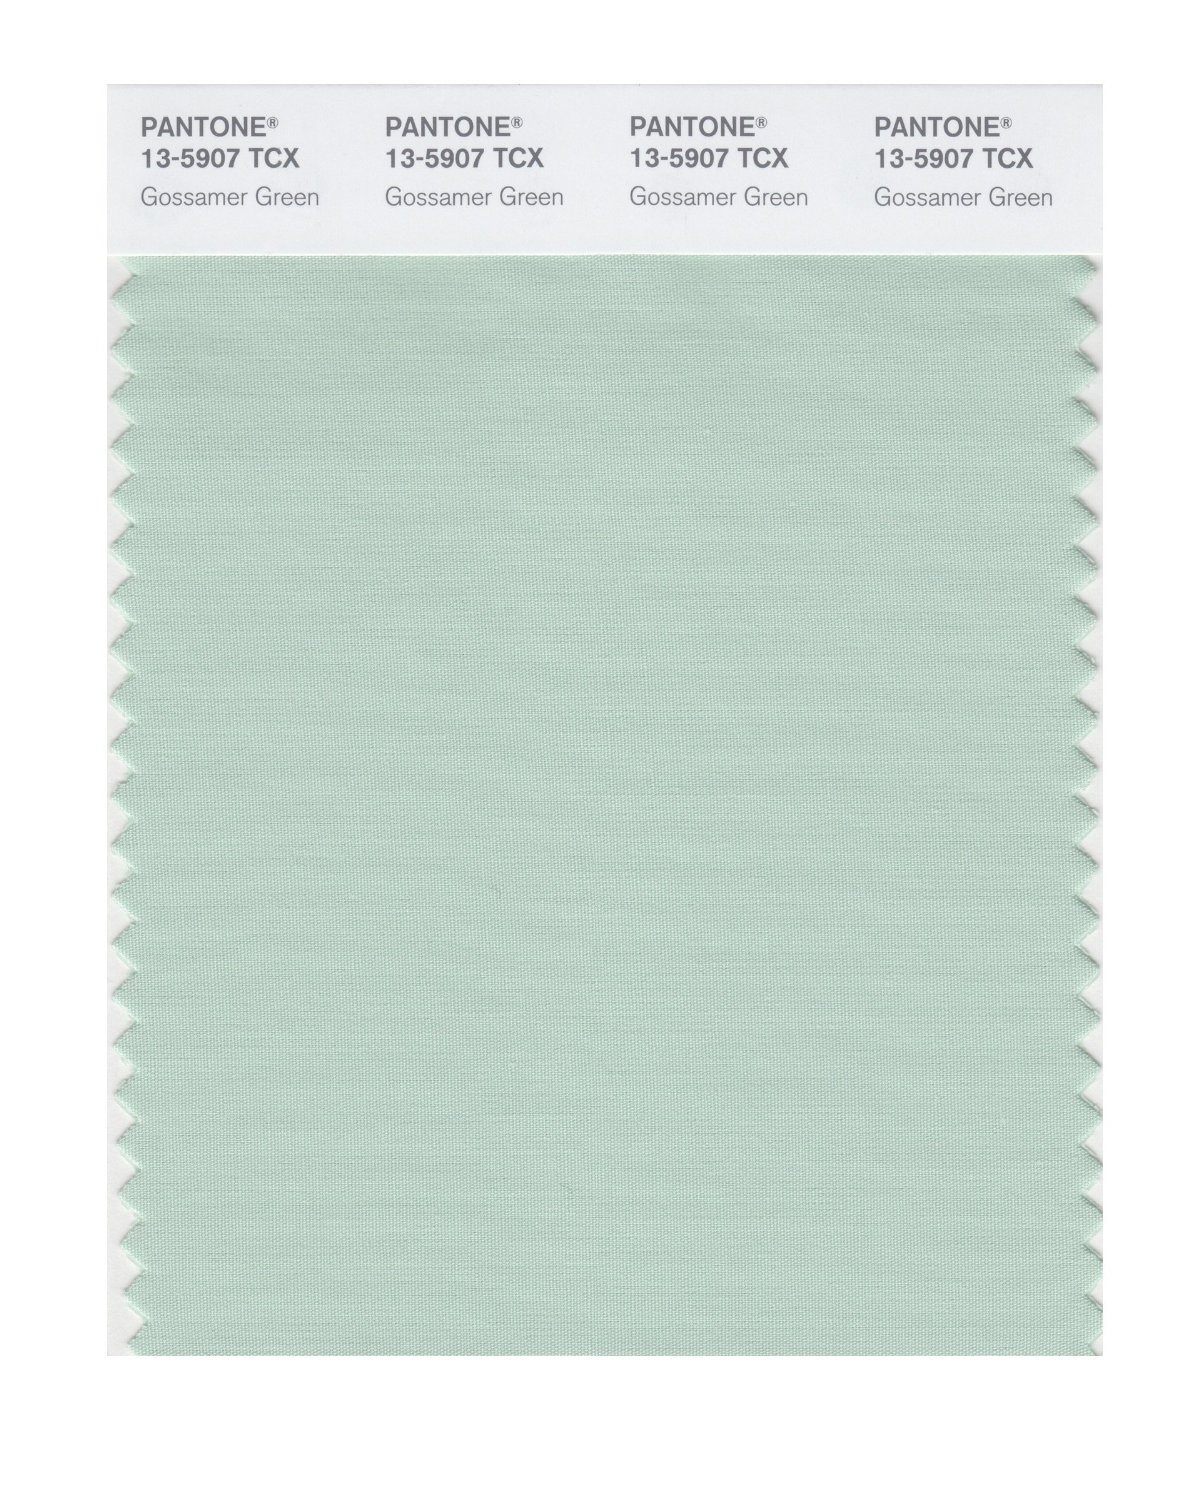 Pantone Smart Swatch 13-5907 Gossamer Green